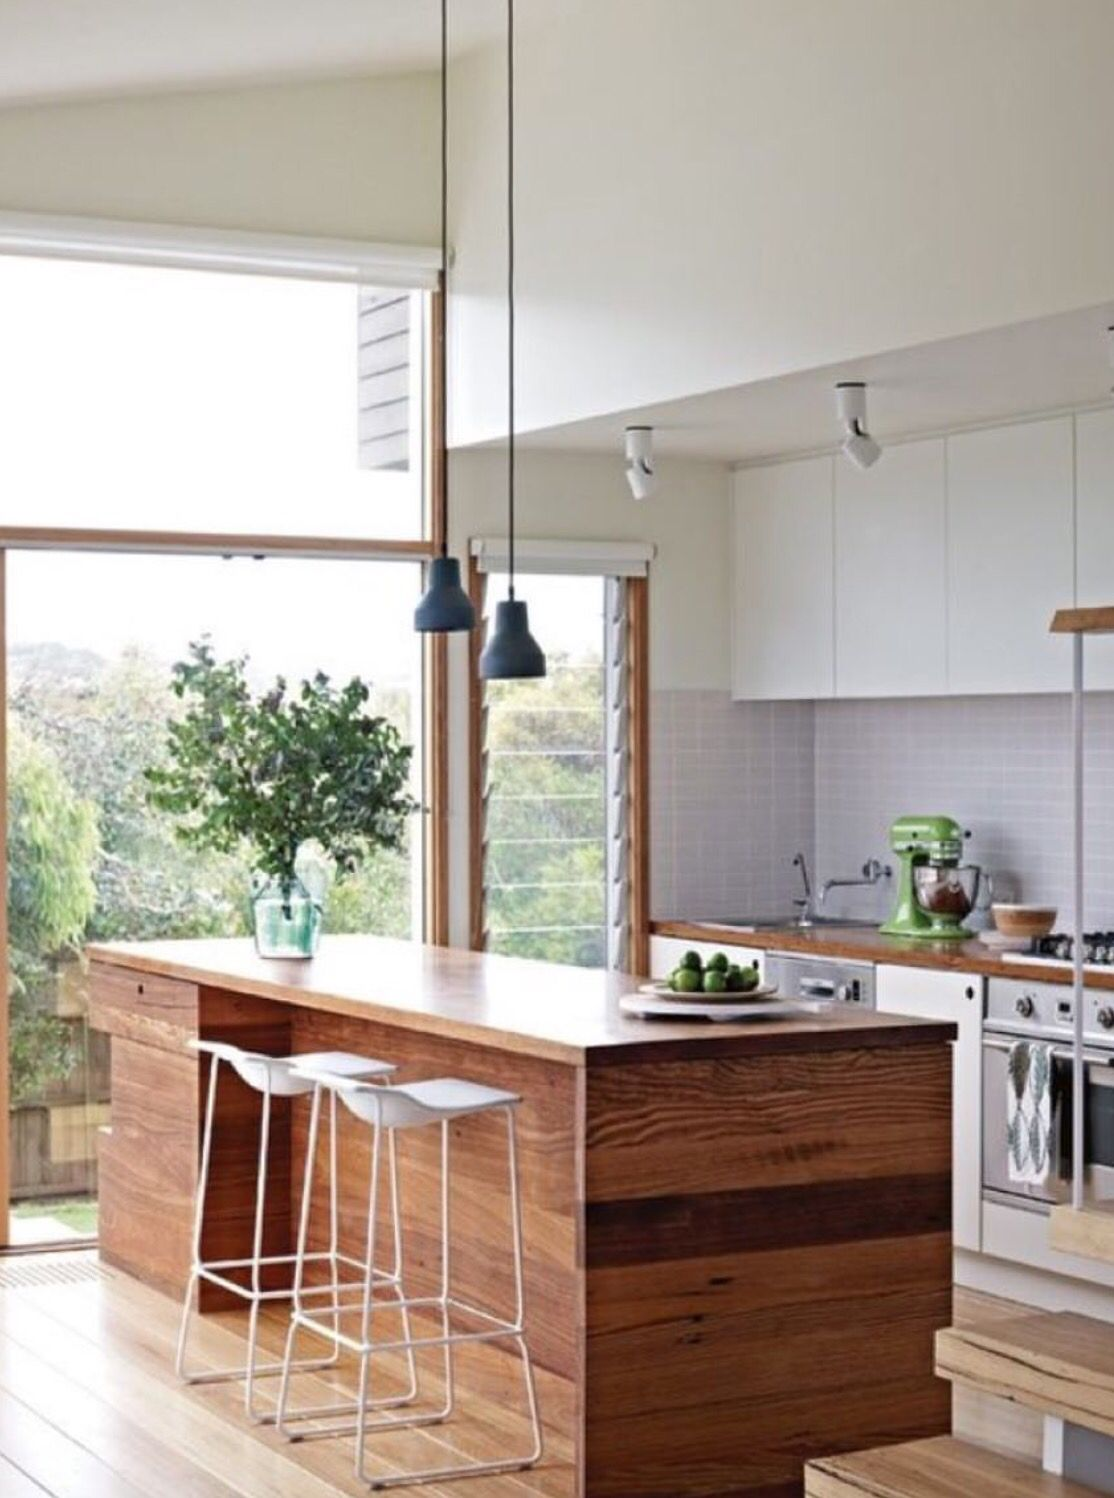 Love this kitchen | House & Home | Pinterest